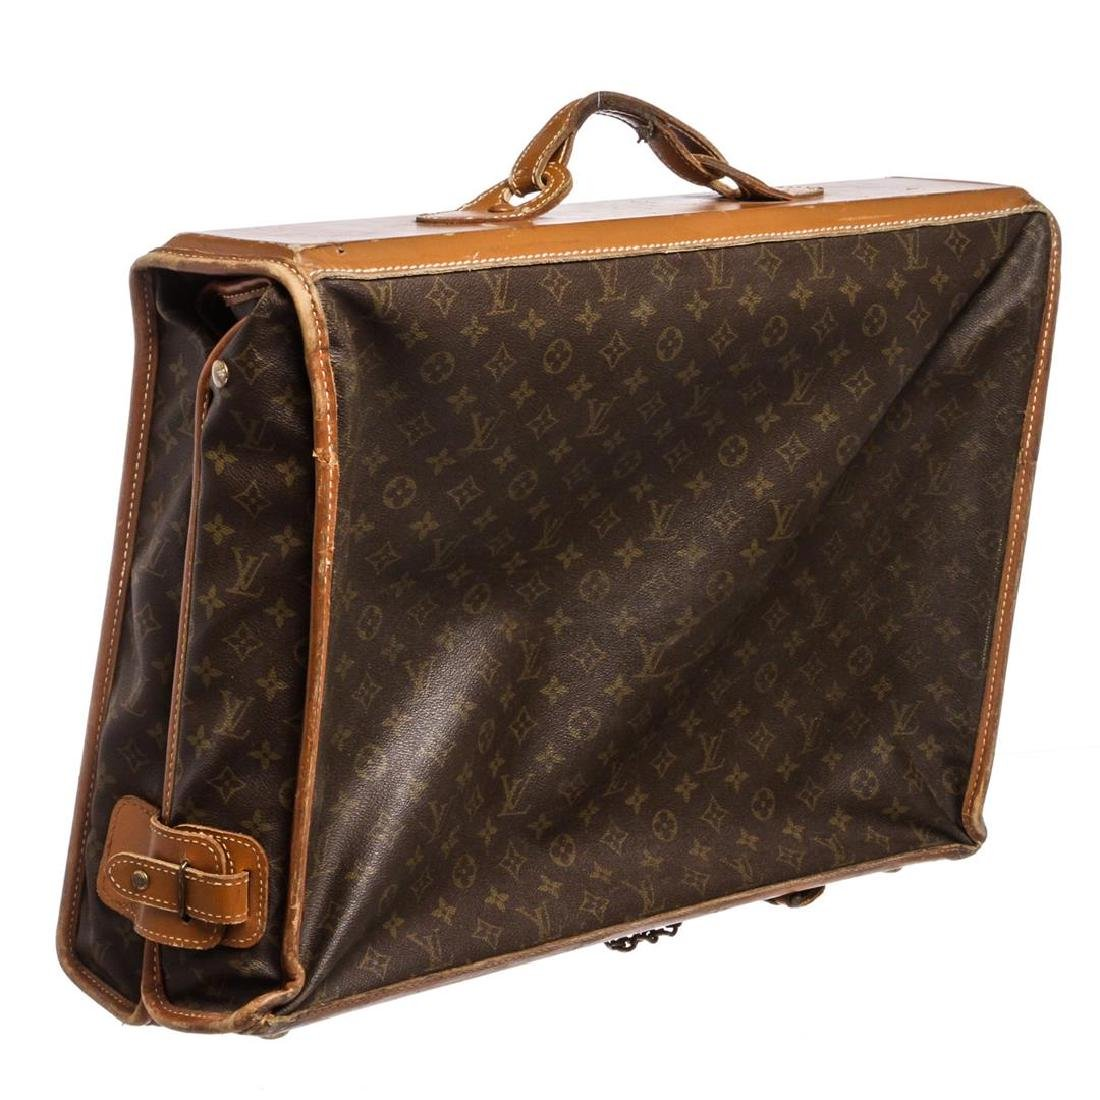 Louis Vuitton Monogram Canvas Leather Vintage Garment - 3